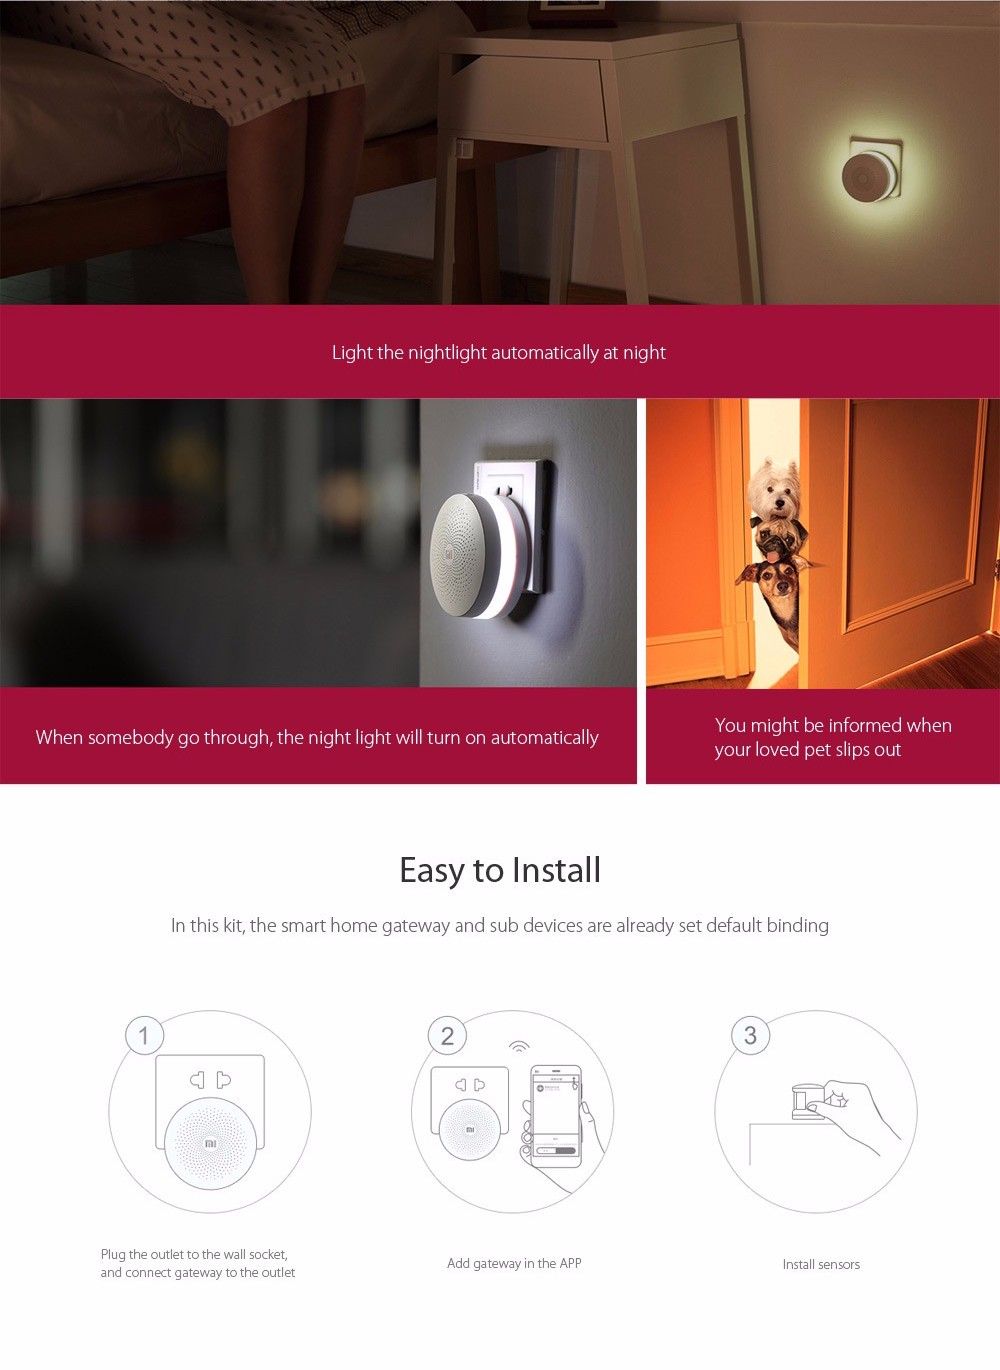 XIAOMI SMART HOME GATEWAY ALARM cz 2-1